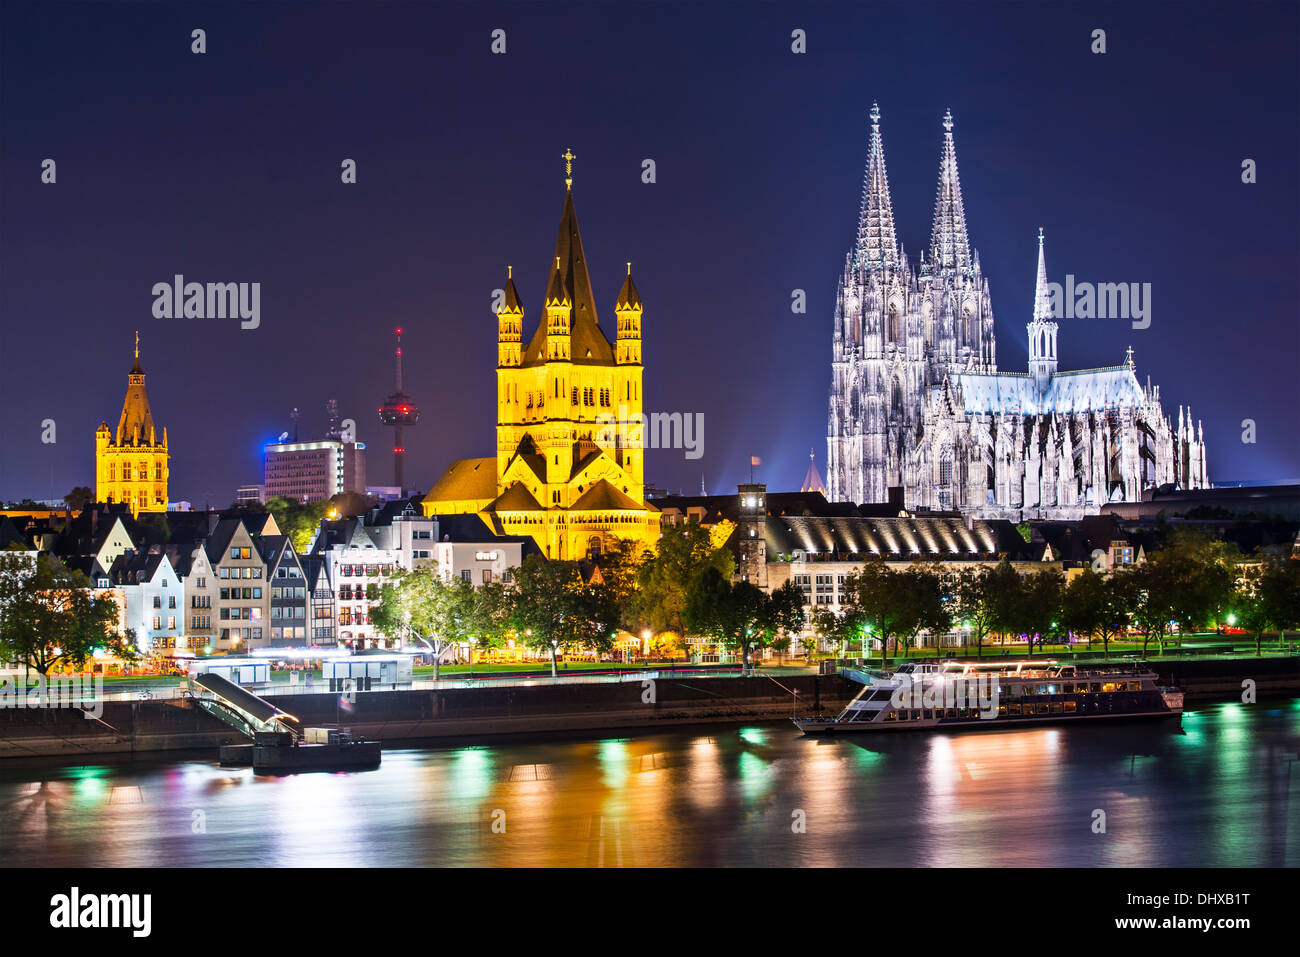 Cologne, Germany skyline on the Rhine River. - Stock Image